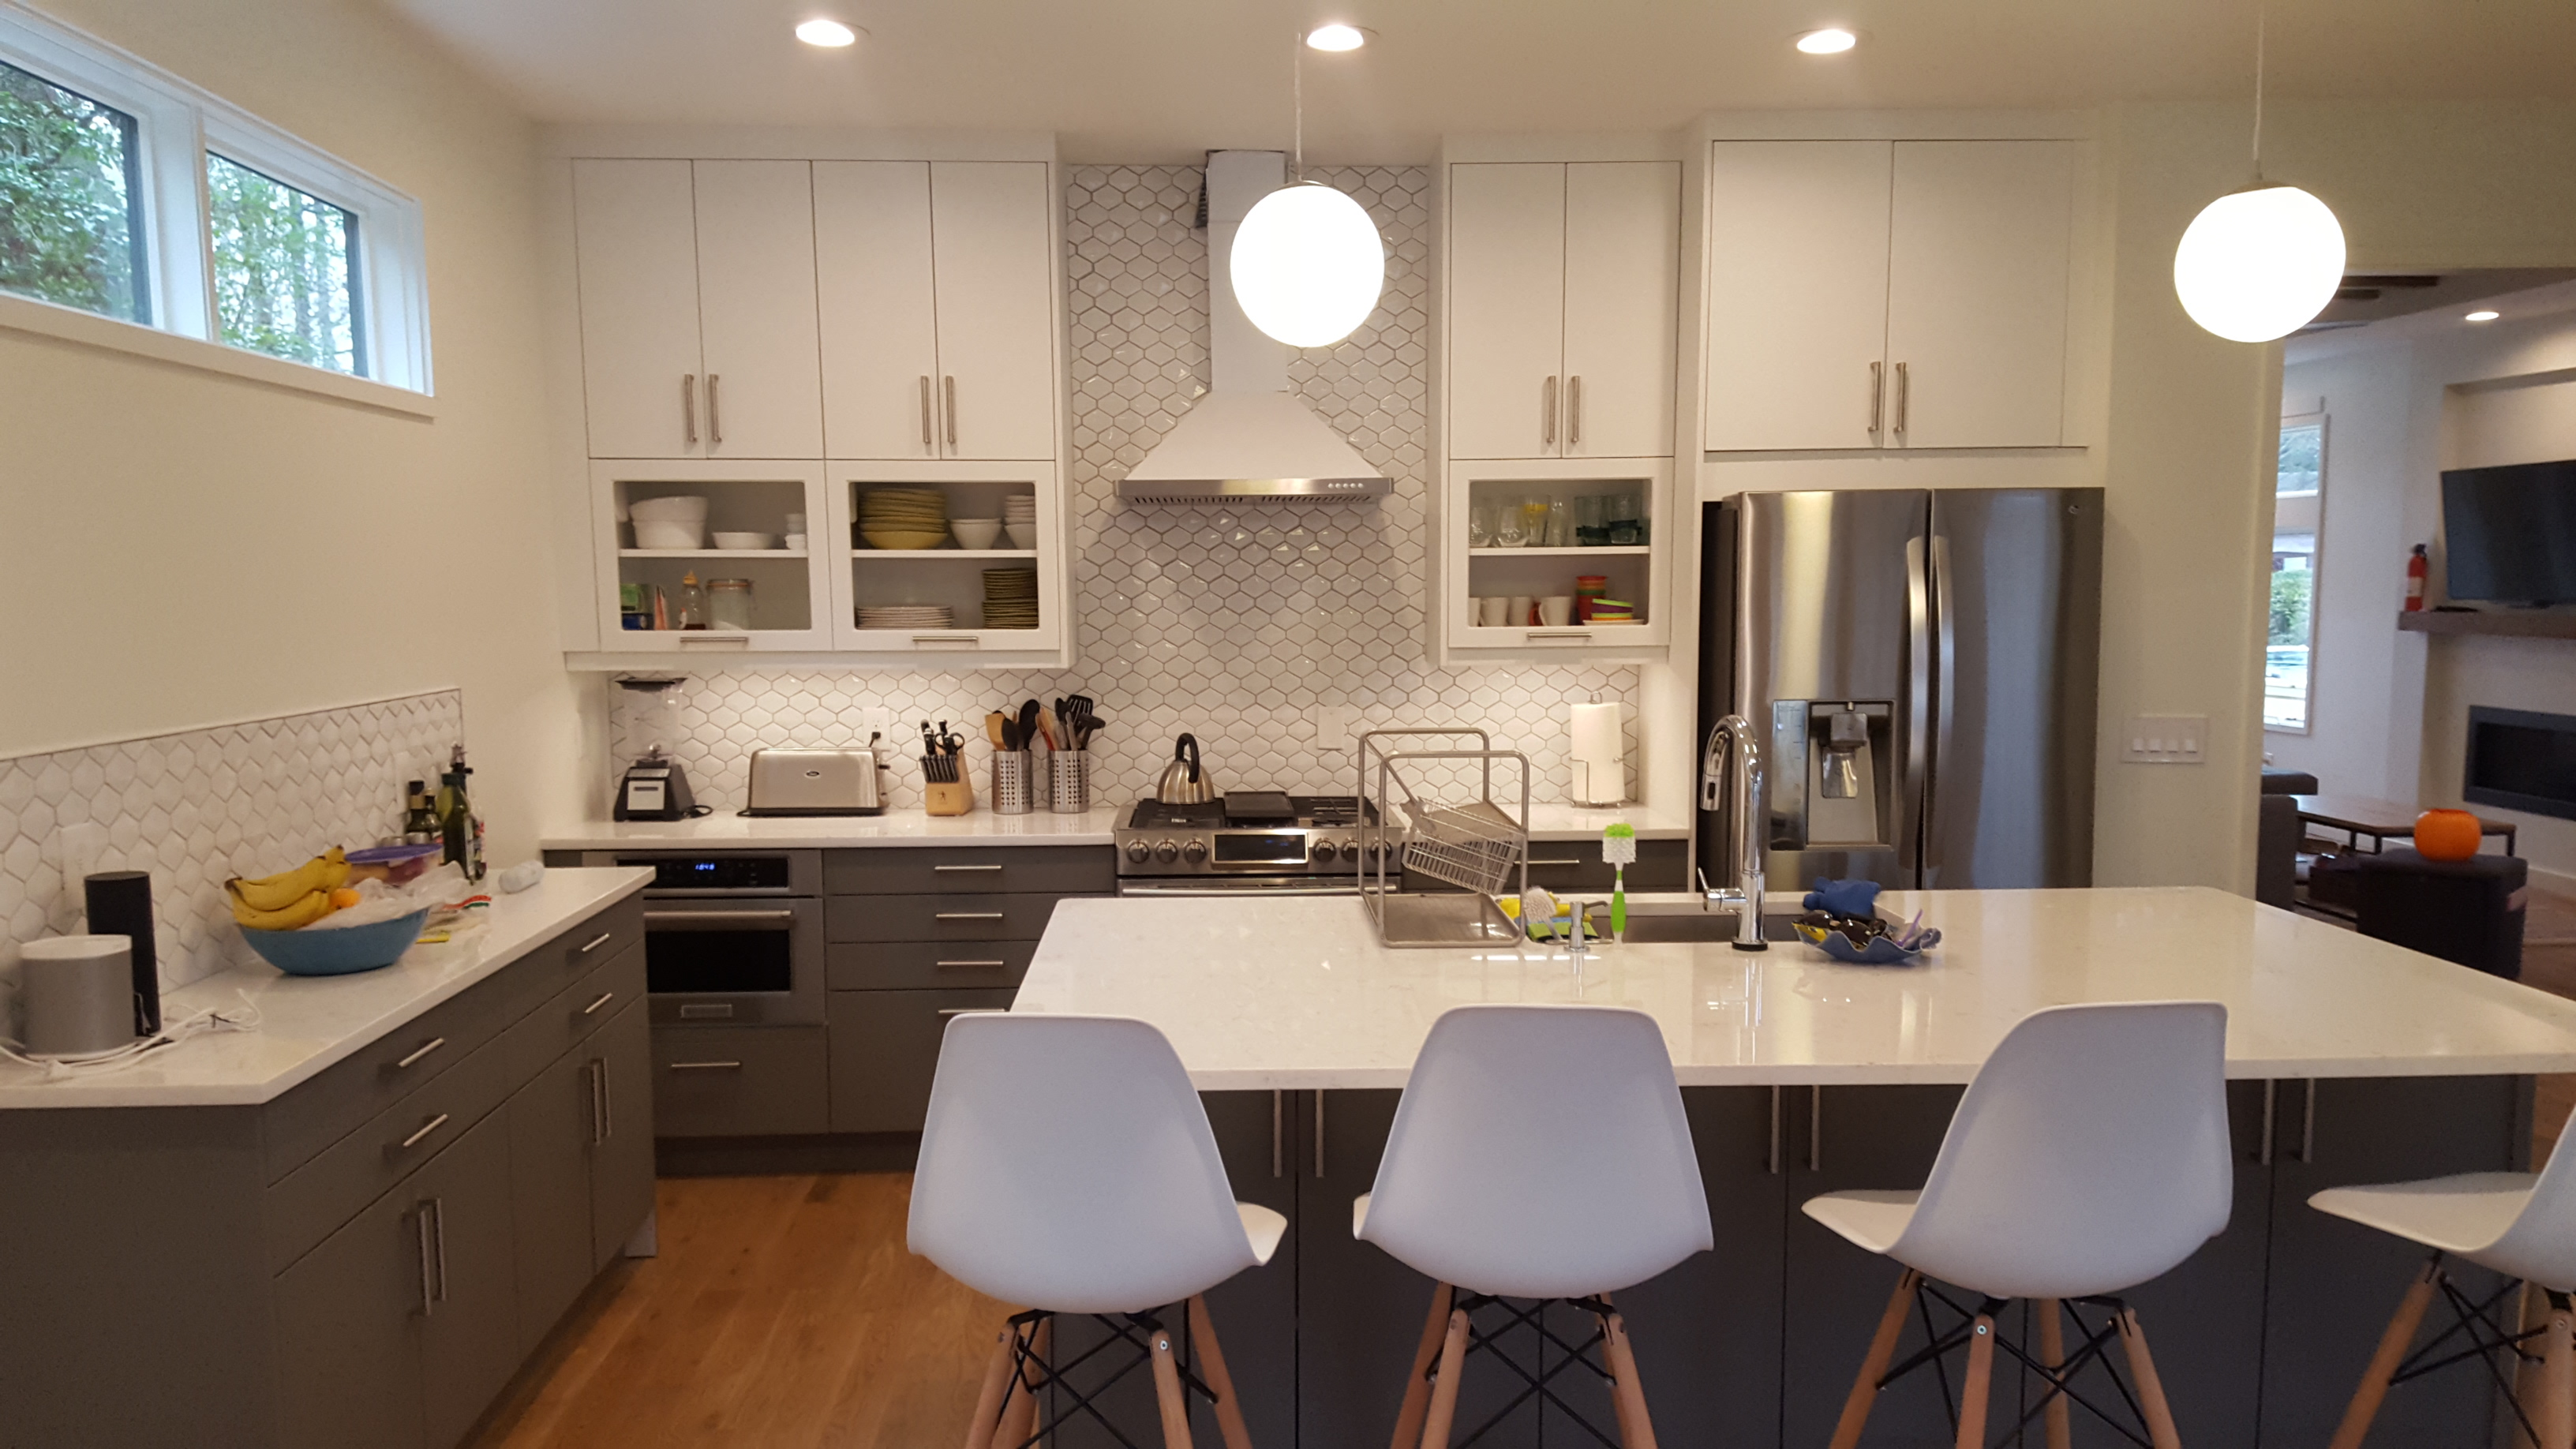 How to Get the Kitchen Design Style You Love with Affordable IKEA